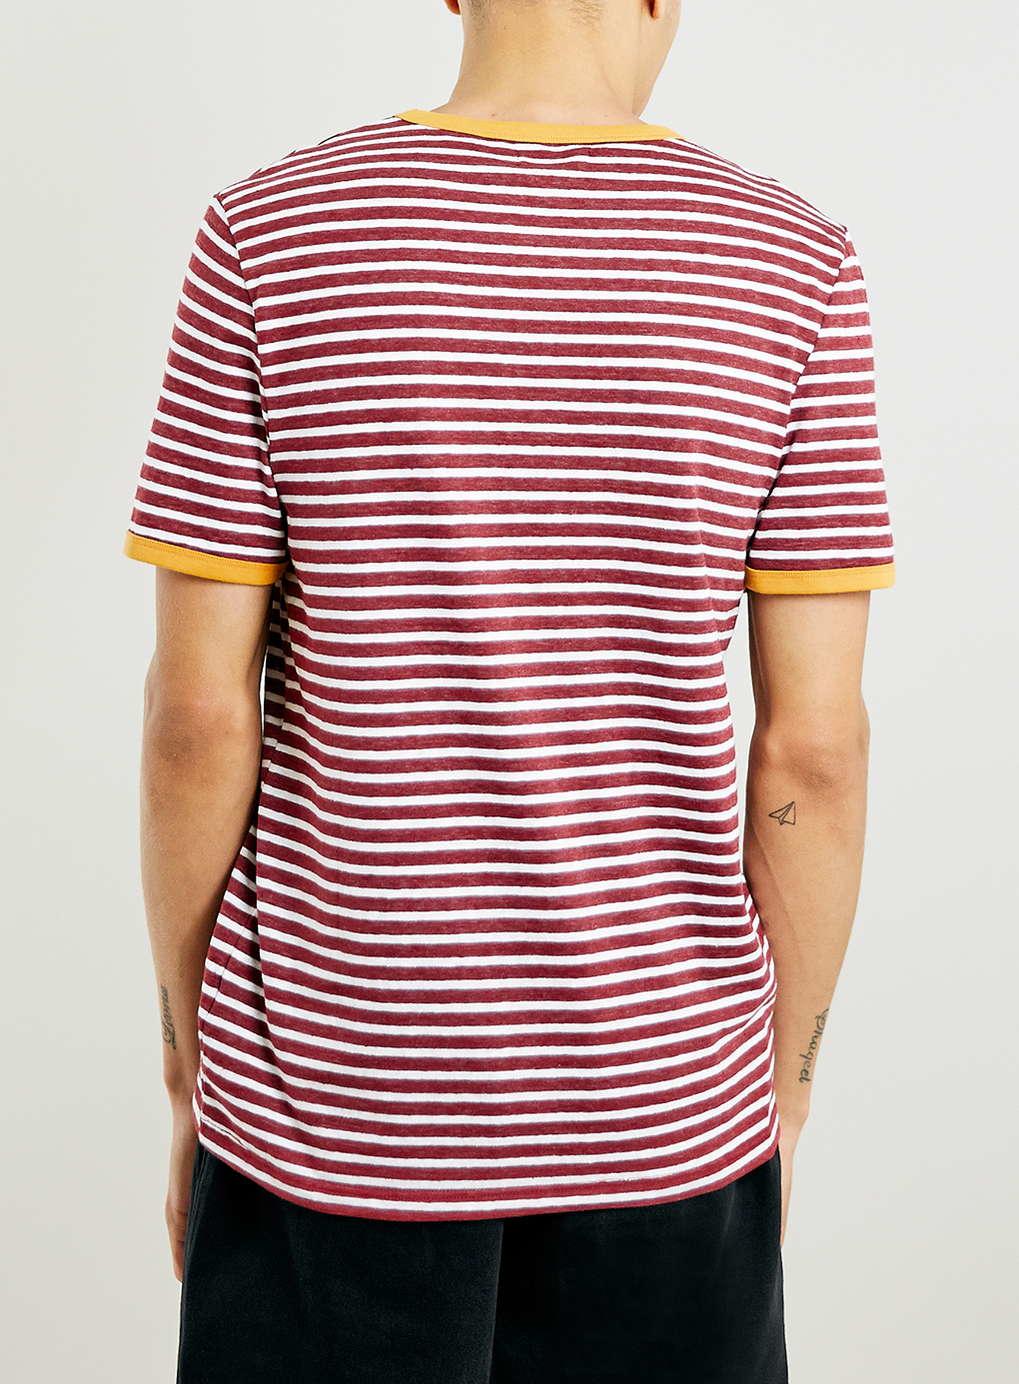 Blue and burgundy striped mens sweaters hope, you